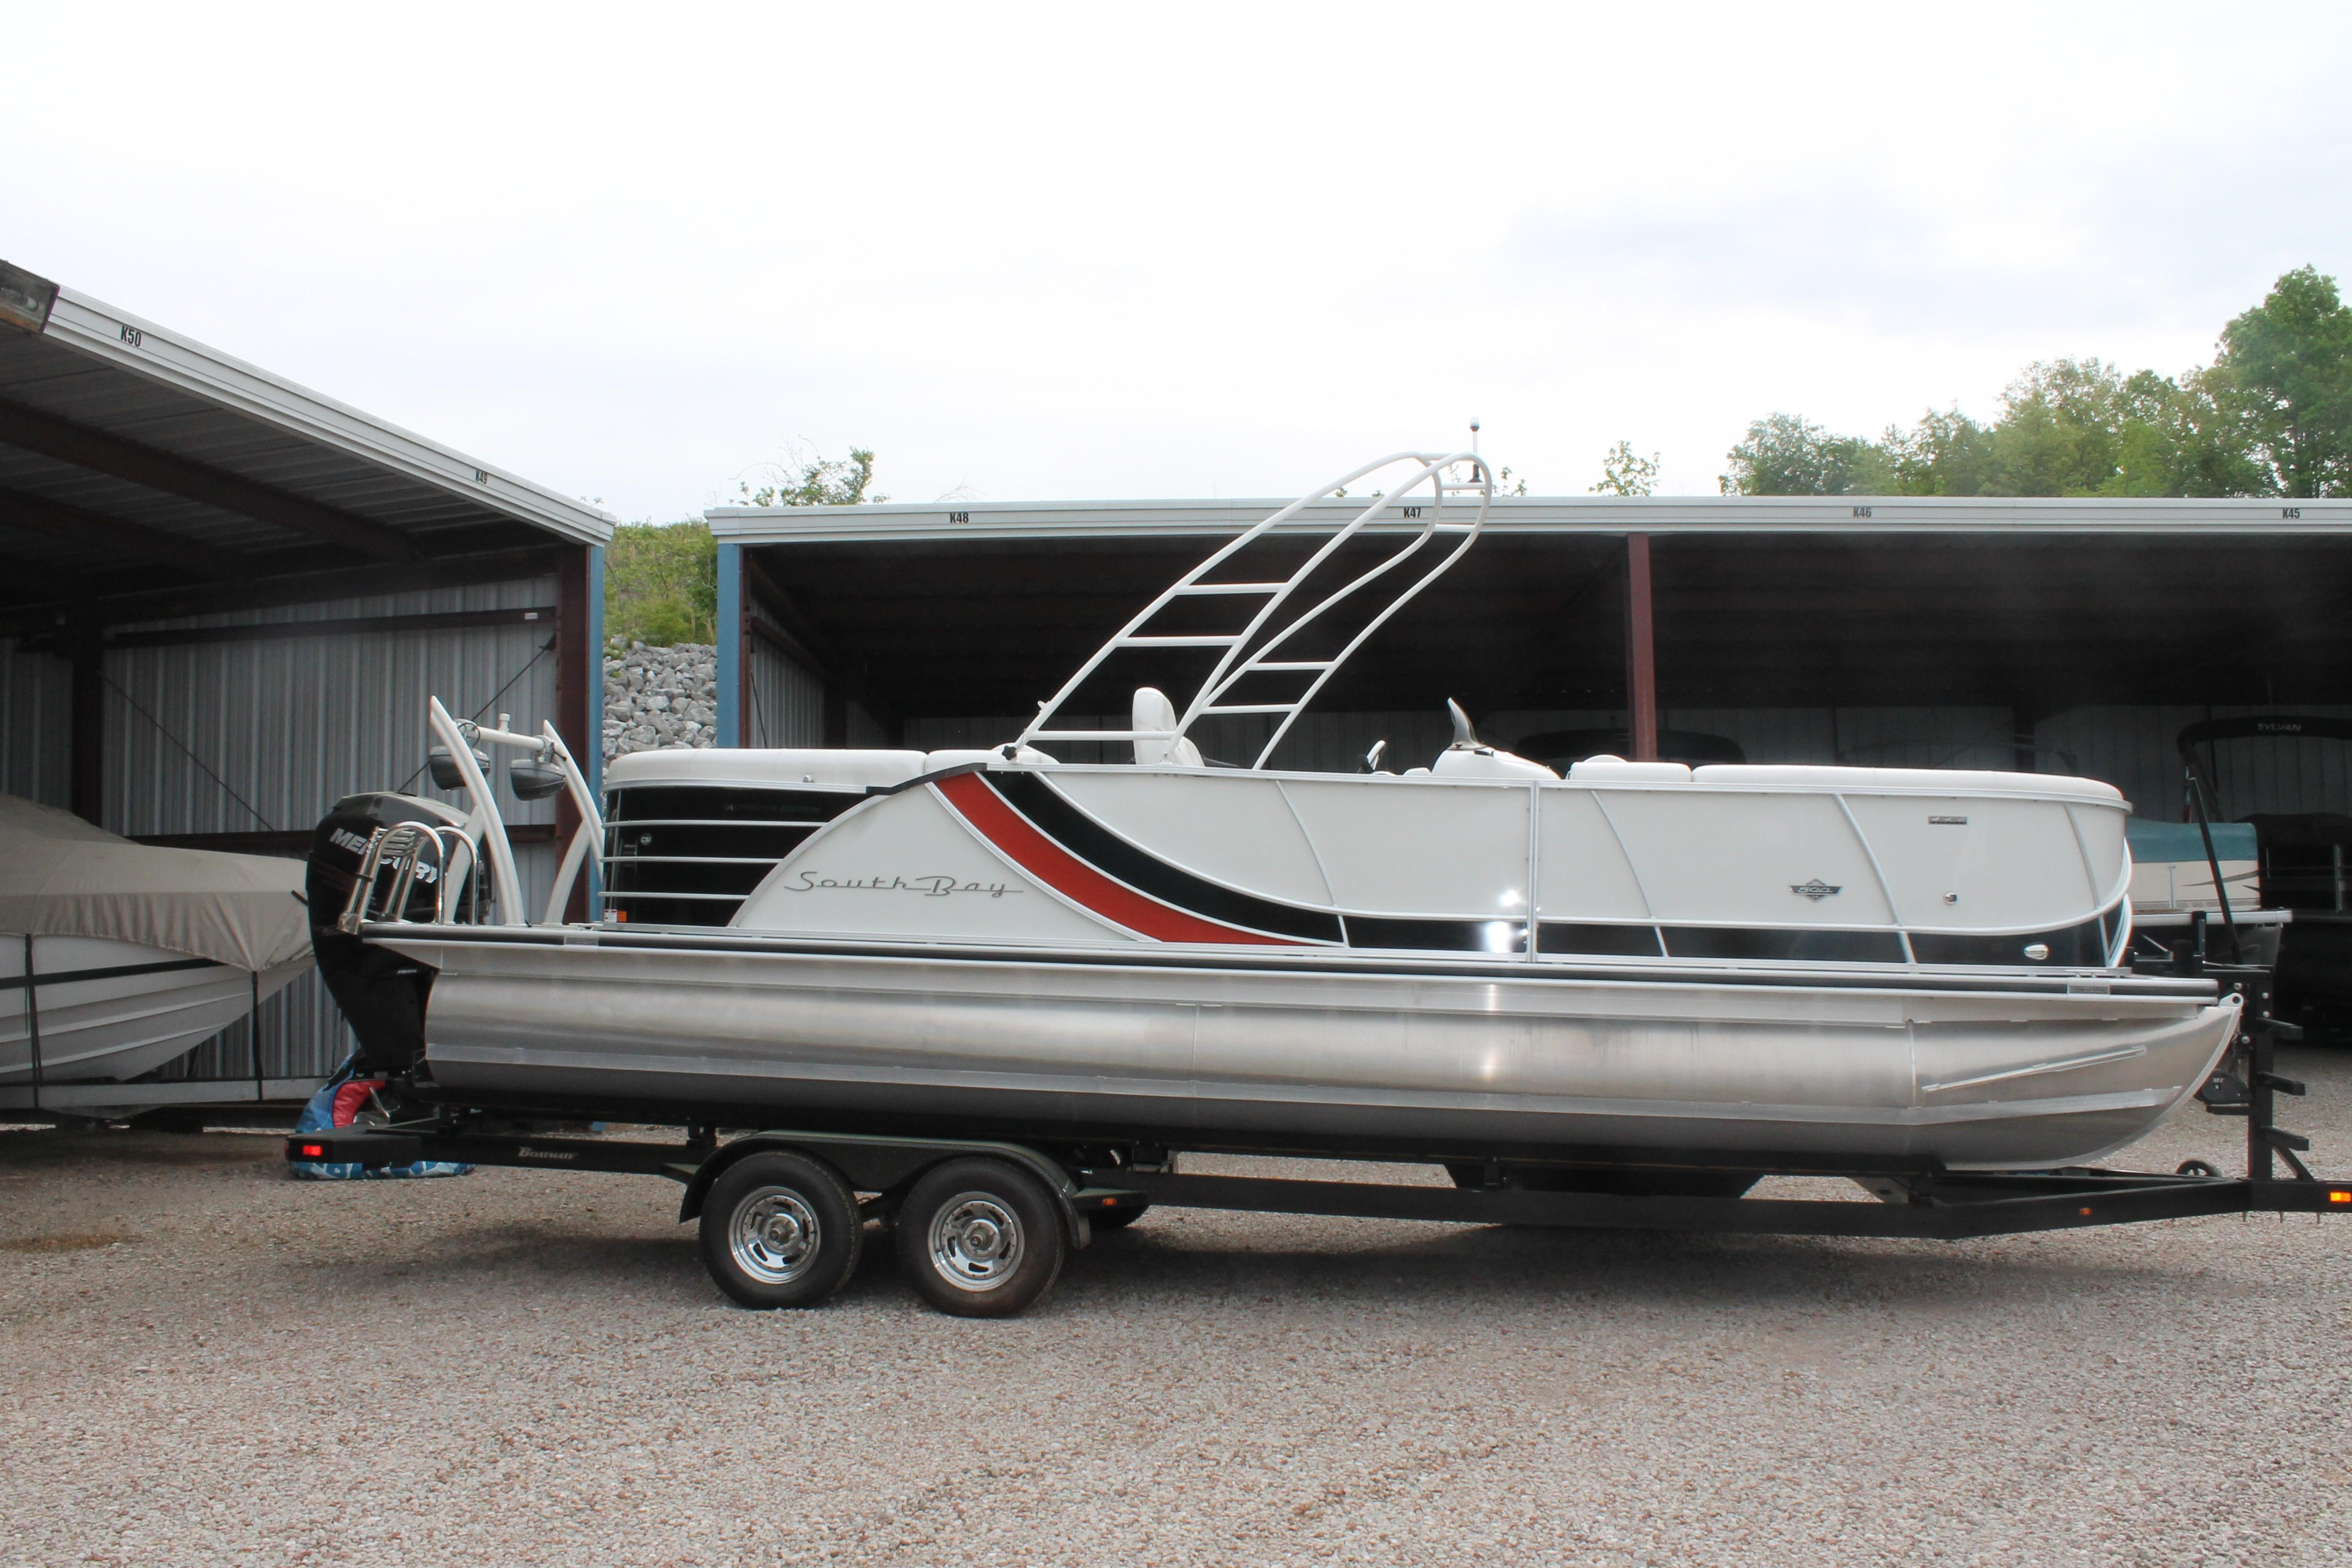 2016 South Bay 525 RS Pontoon Boat for sale - YachtWorld